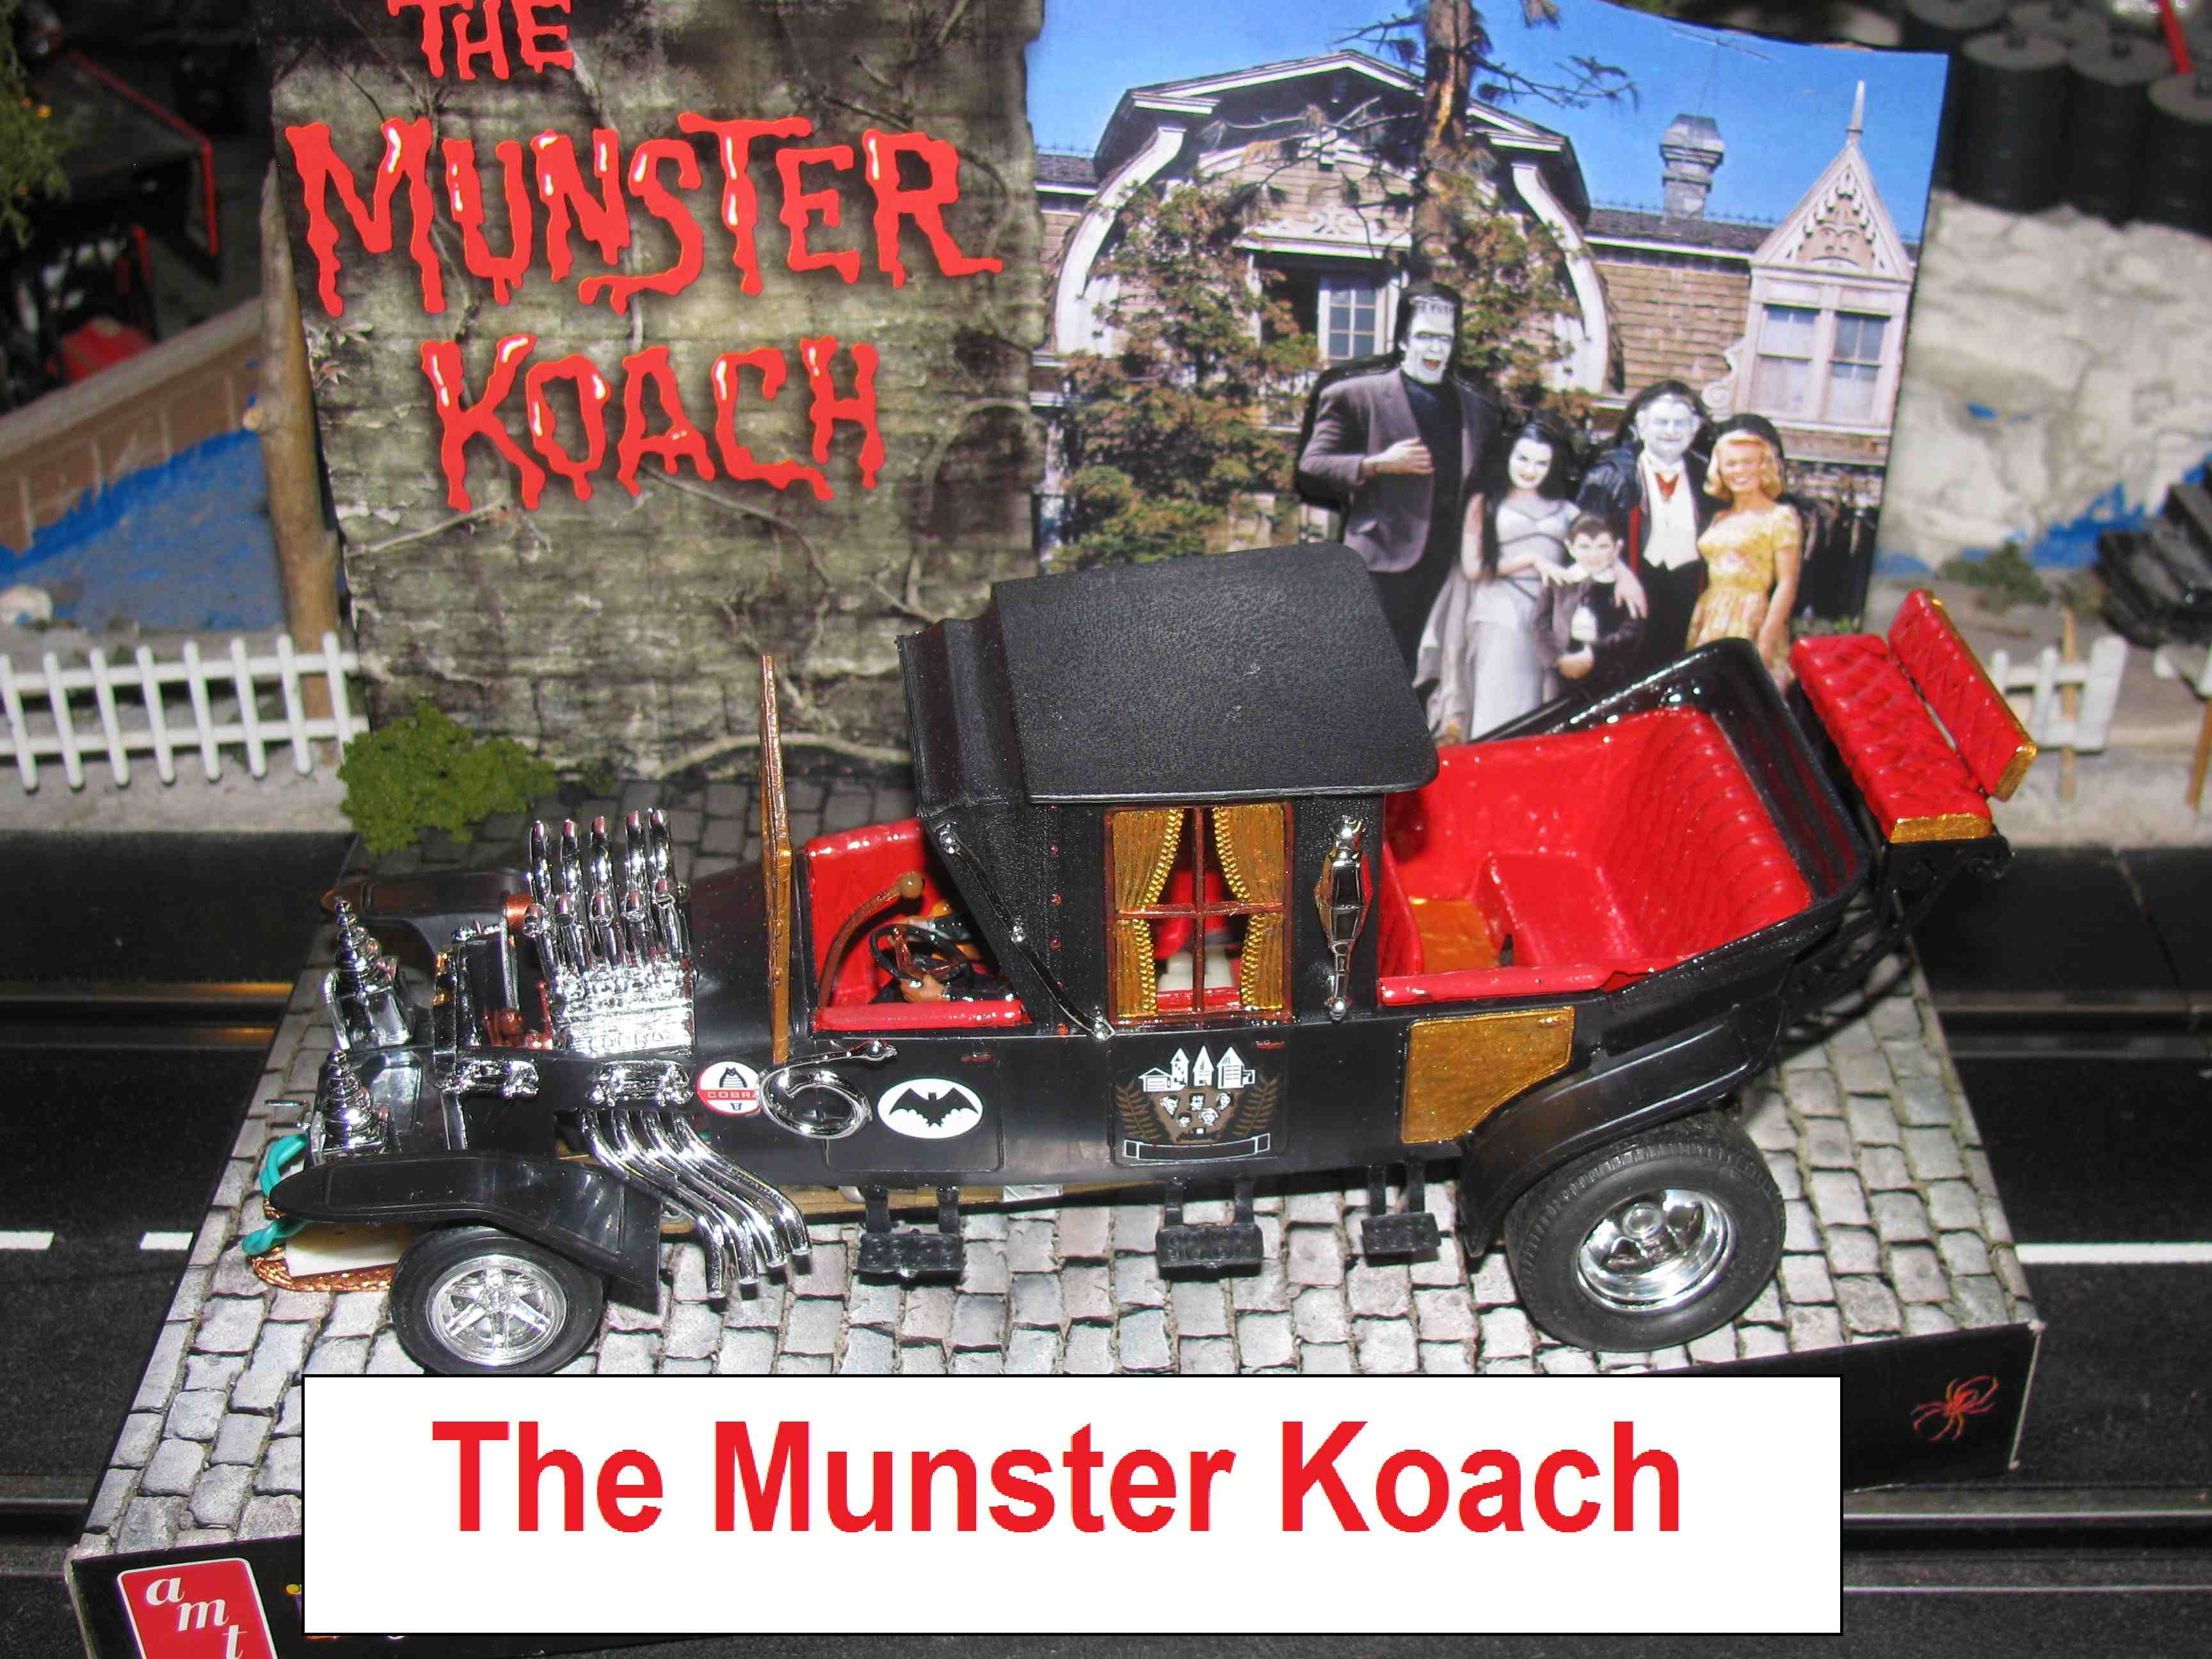 *SOLD* Vintage AMT The Munster Koach Slot Car in 1/24 Scale with Custom Maple Wood Display Stand